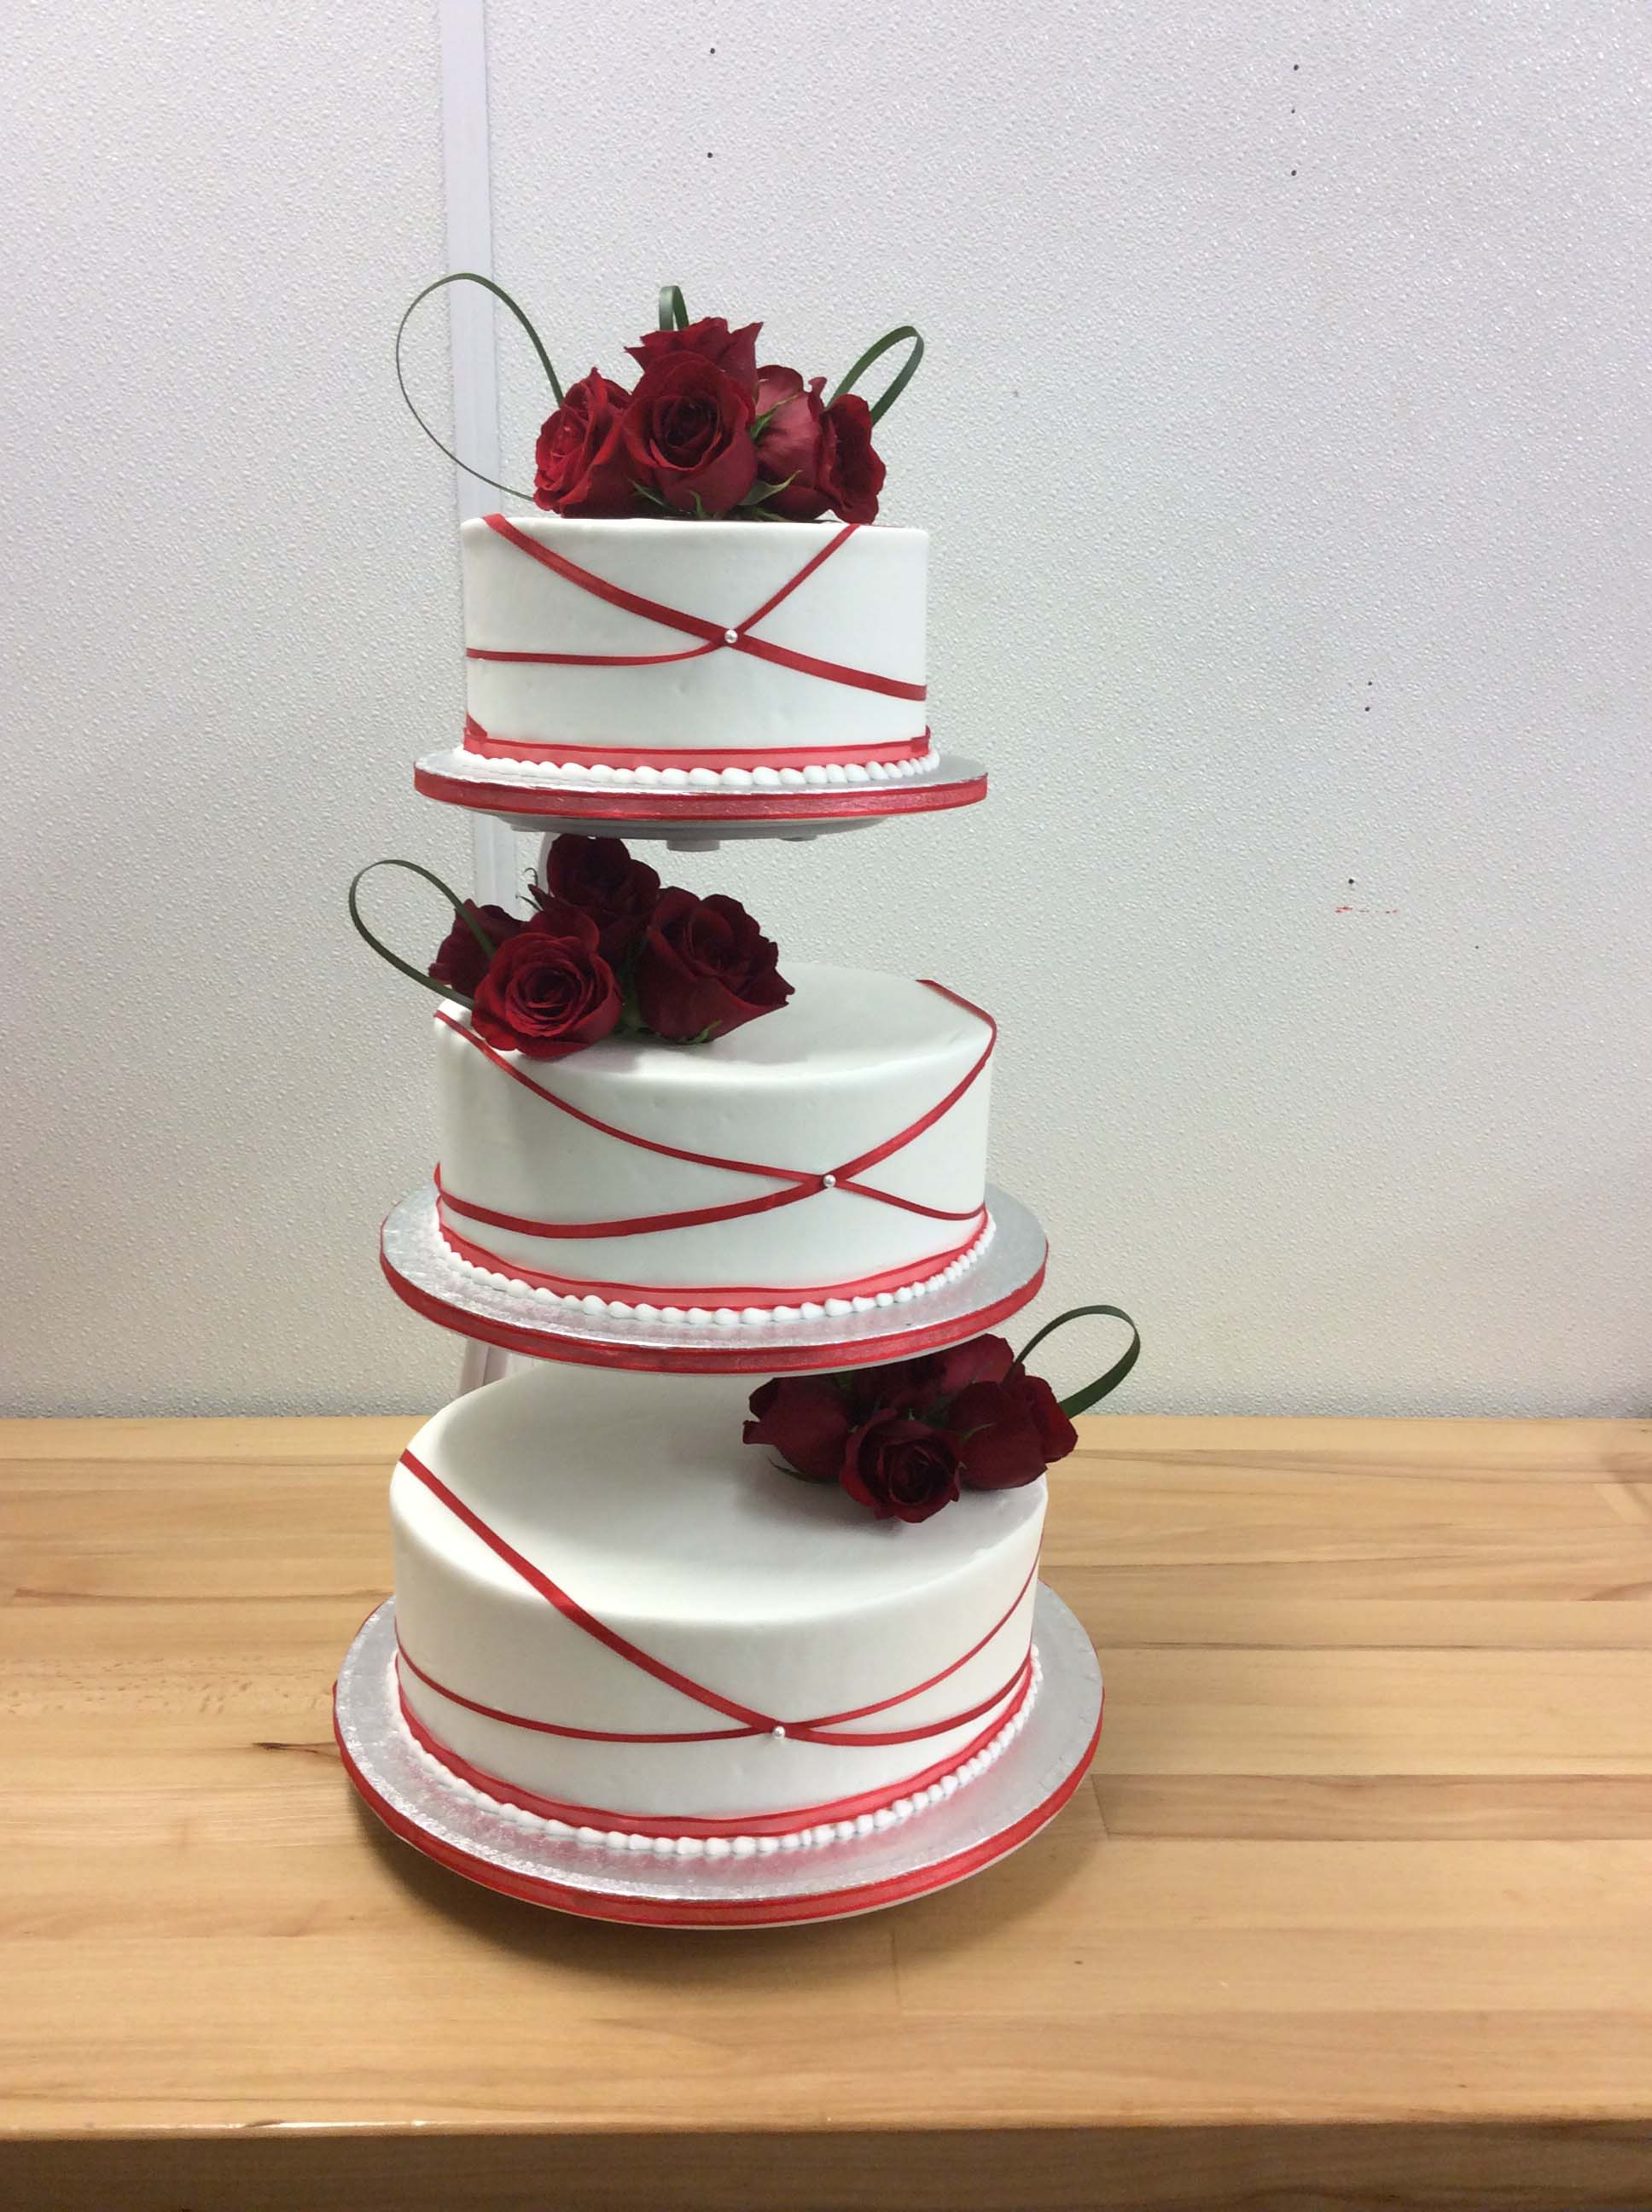 Three-Tier Cake With Red Roses